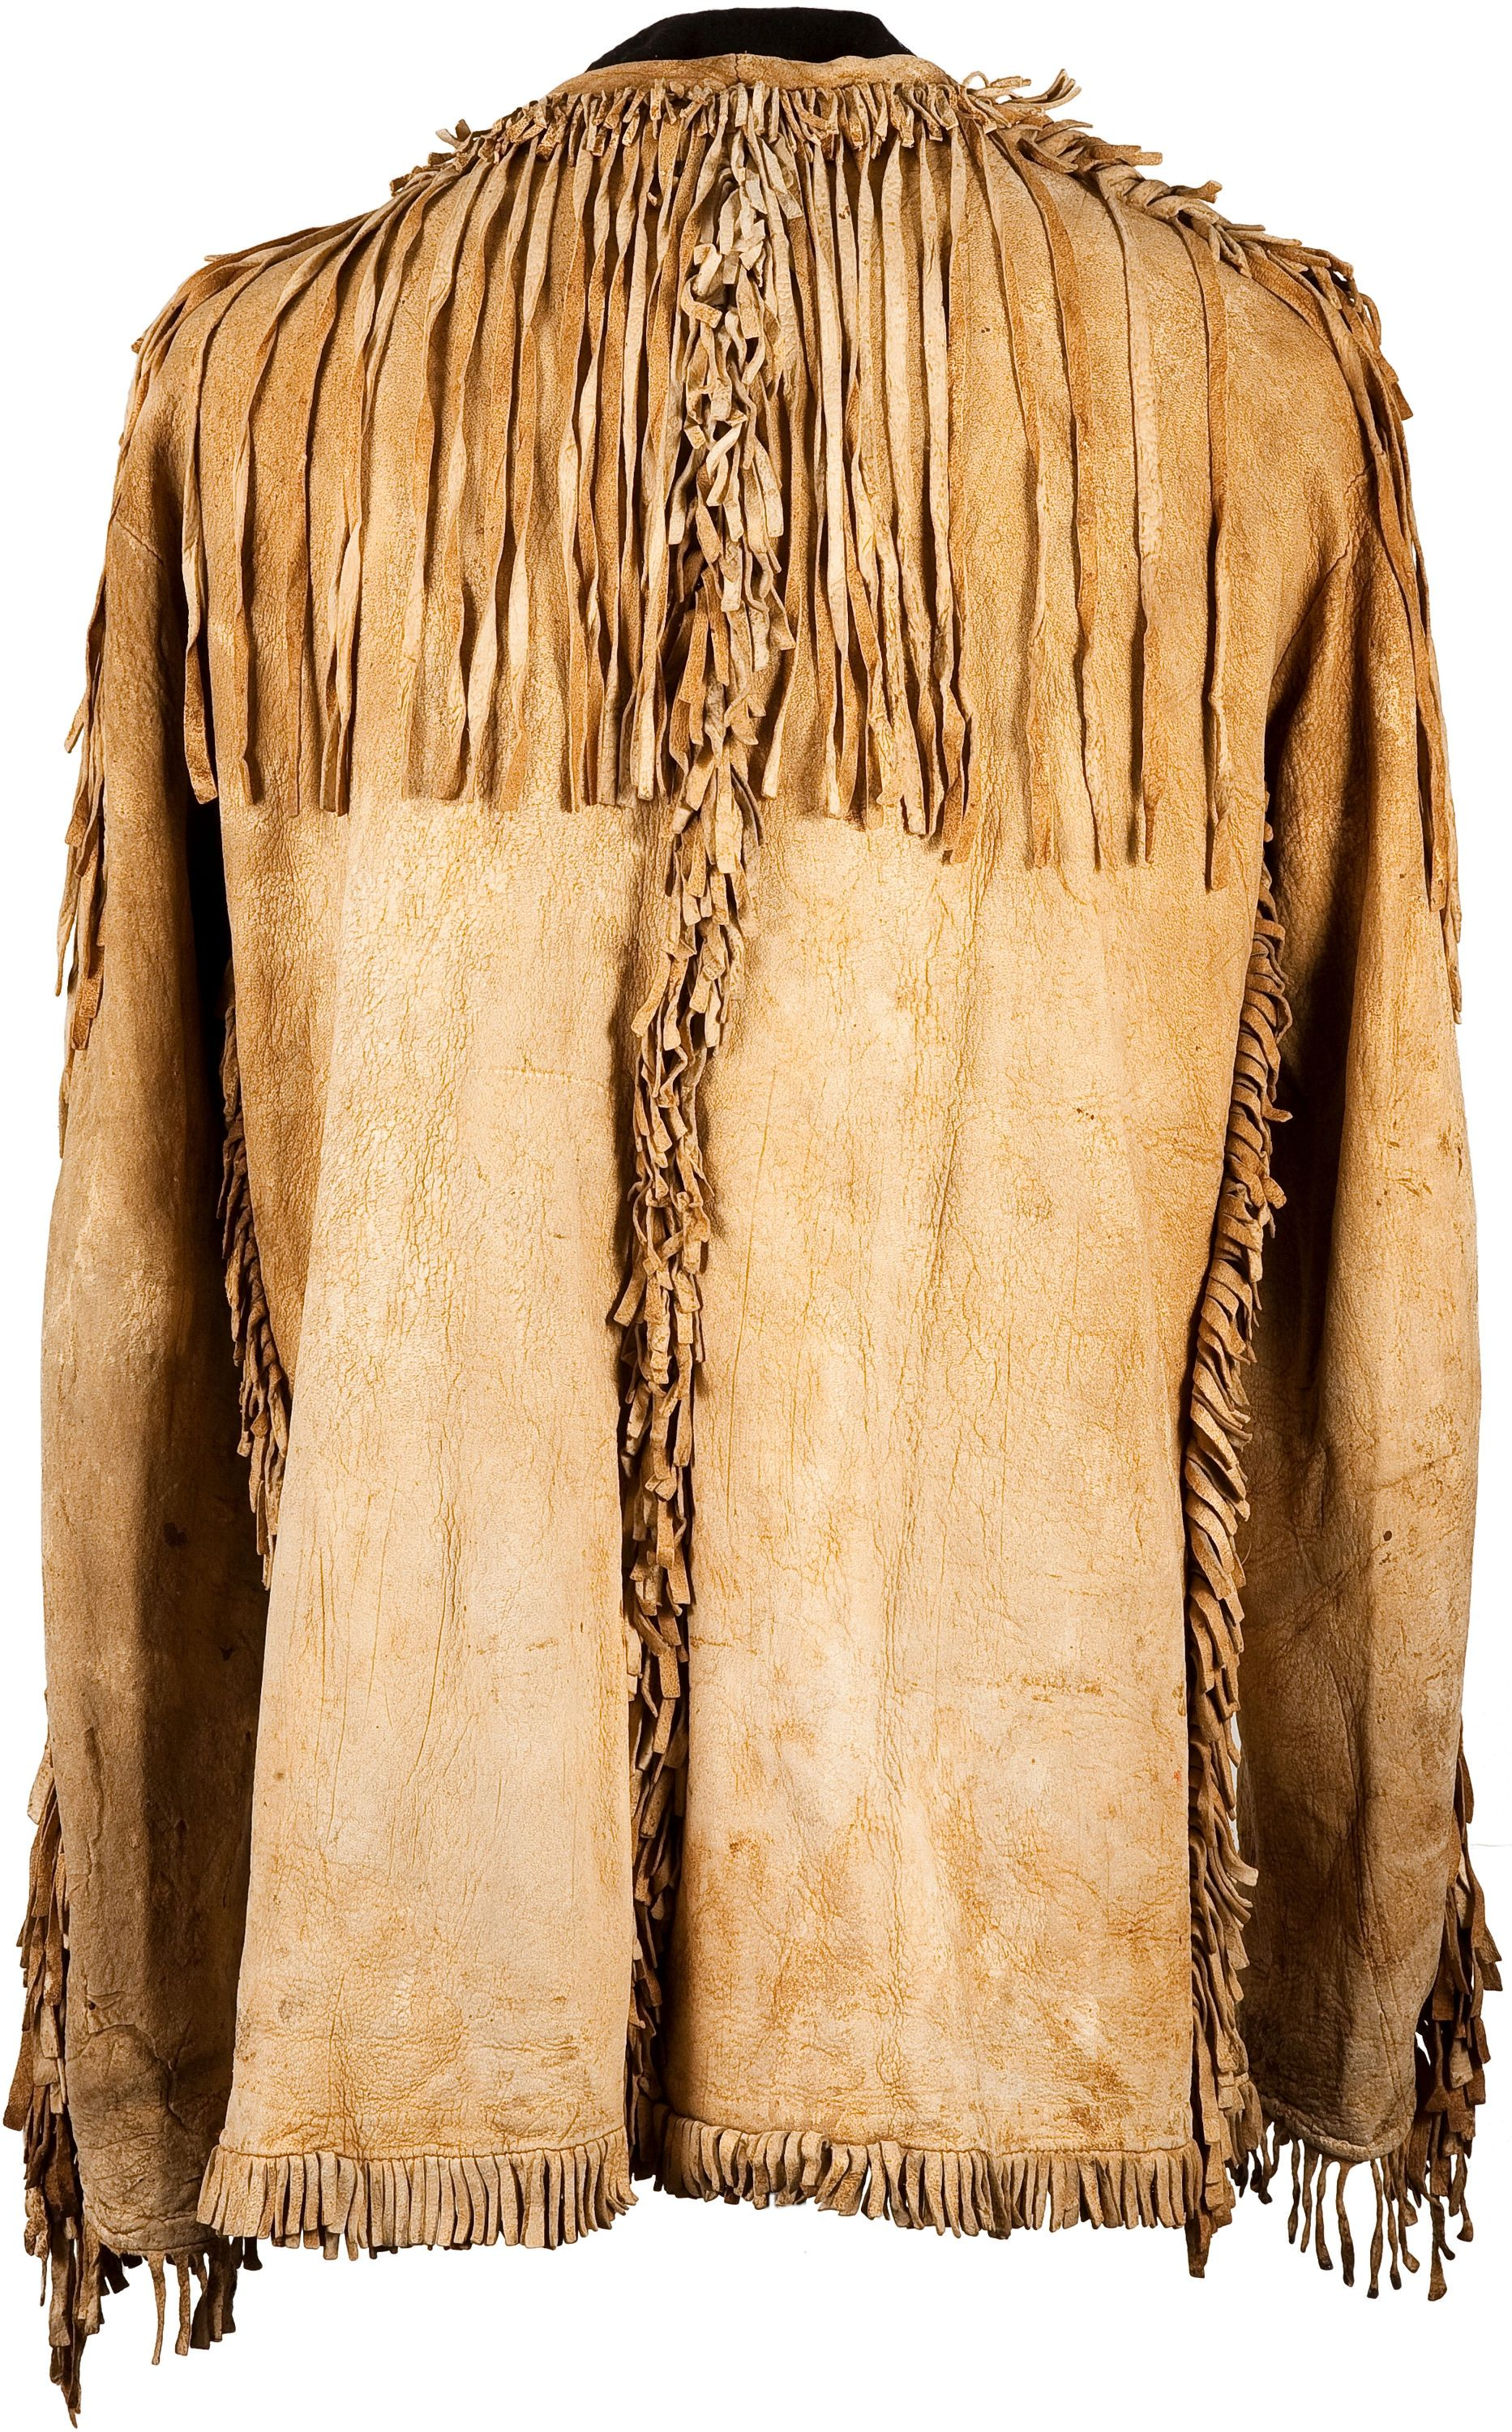 A Plains Fringed Hide Scout Jacket C American